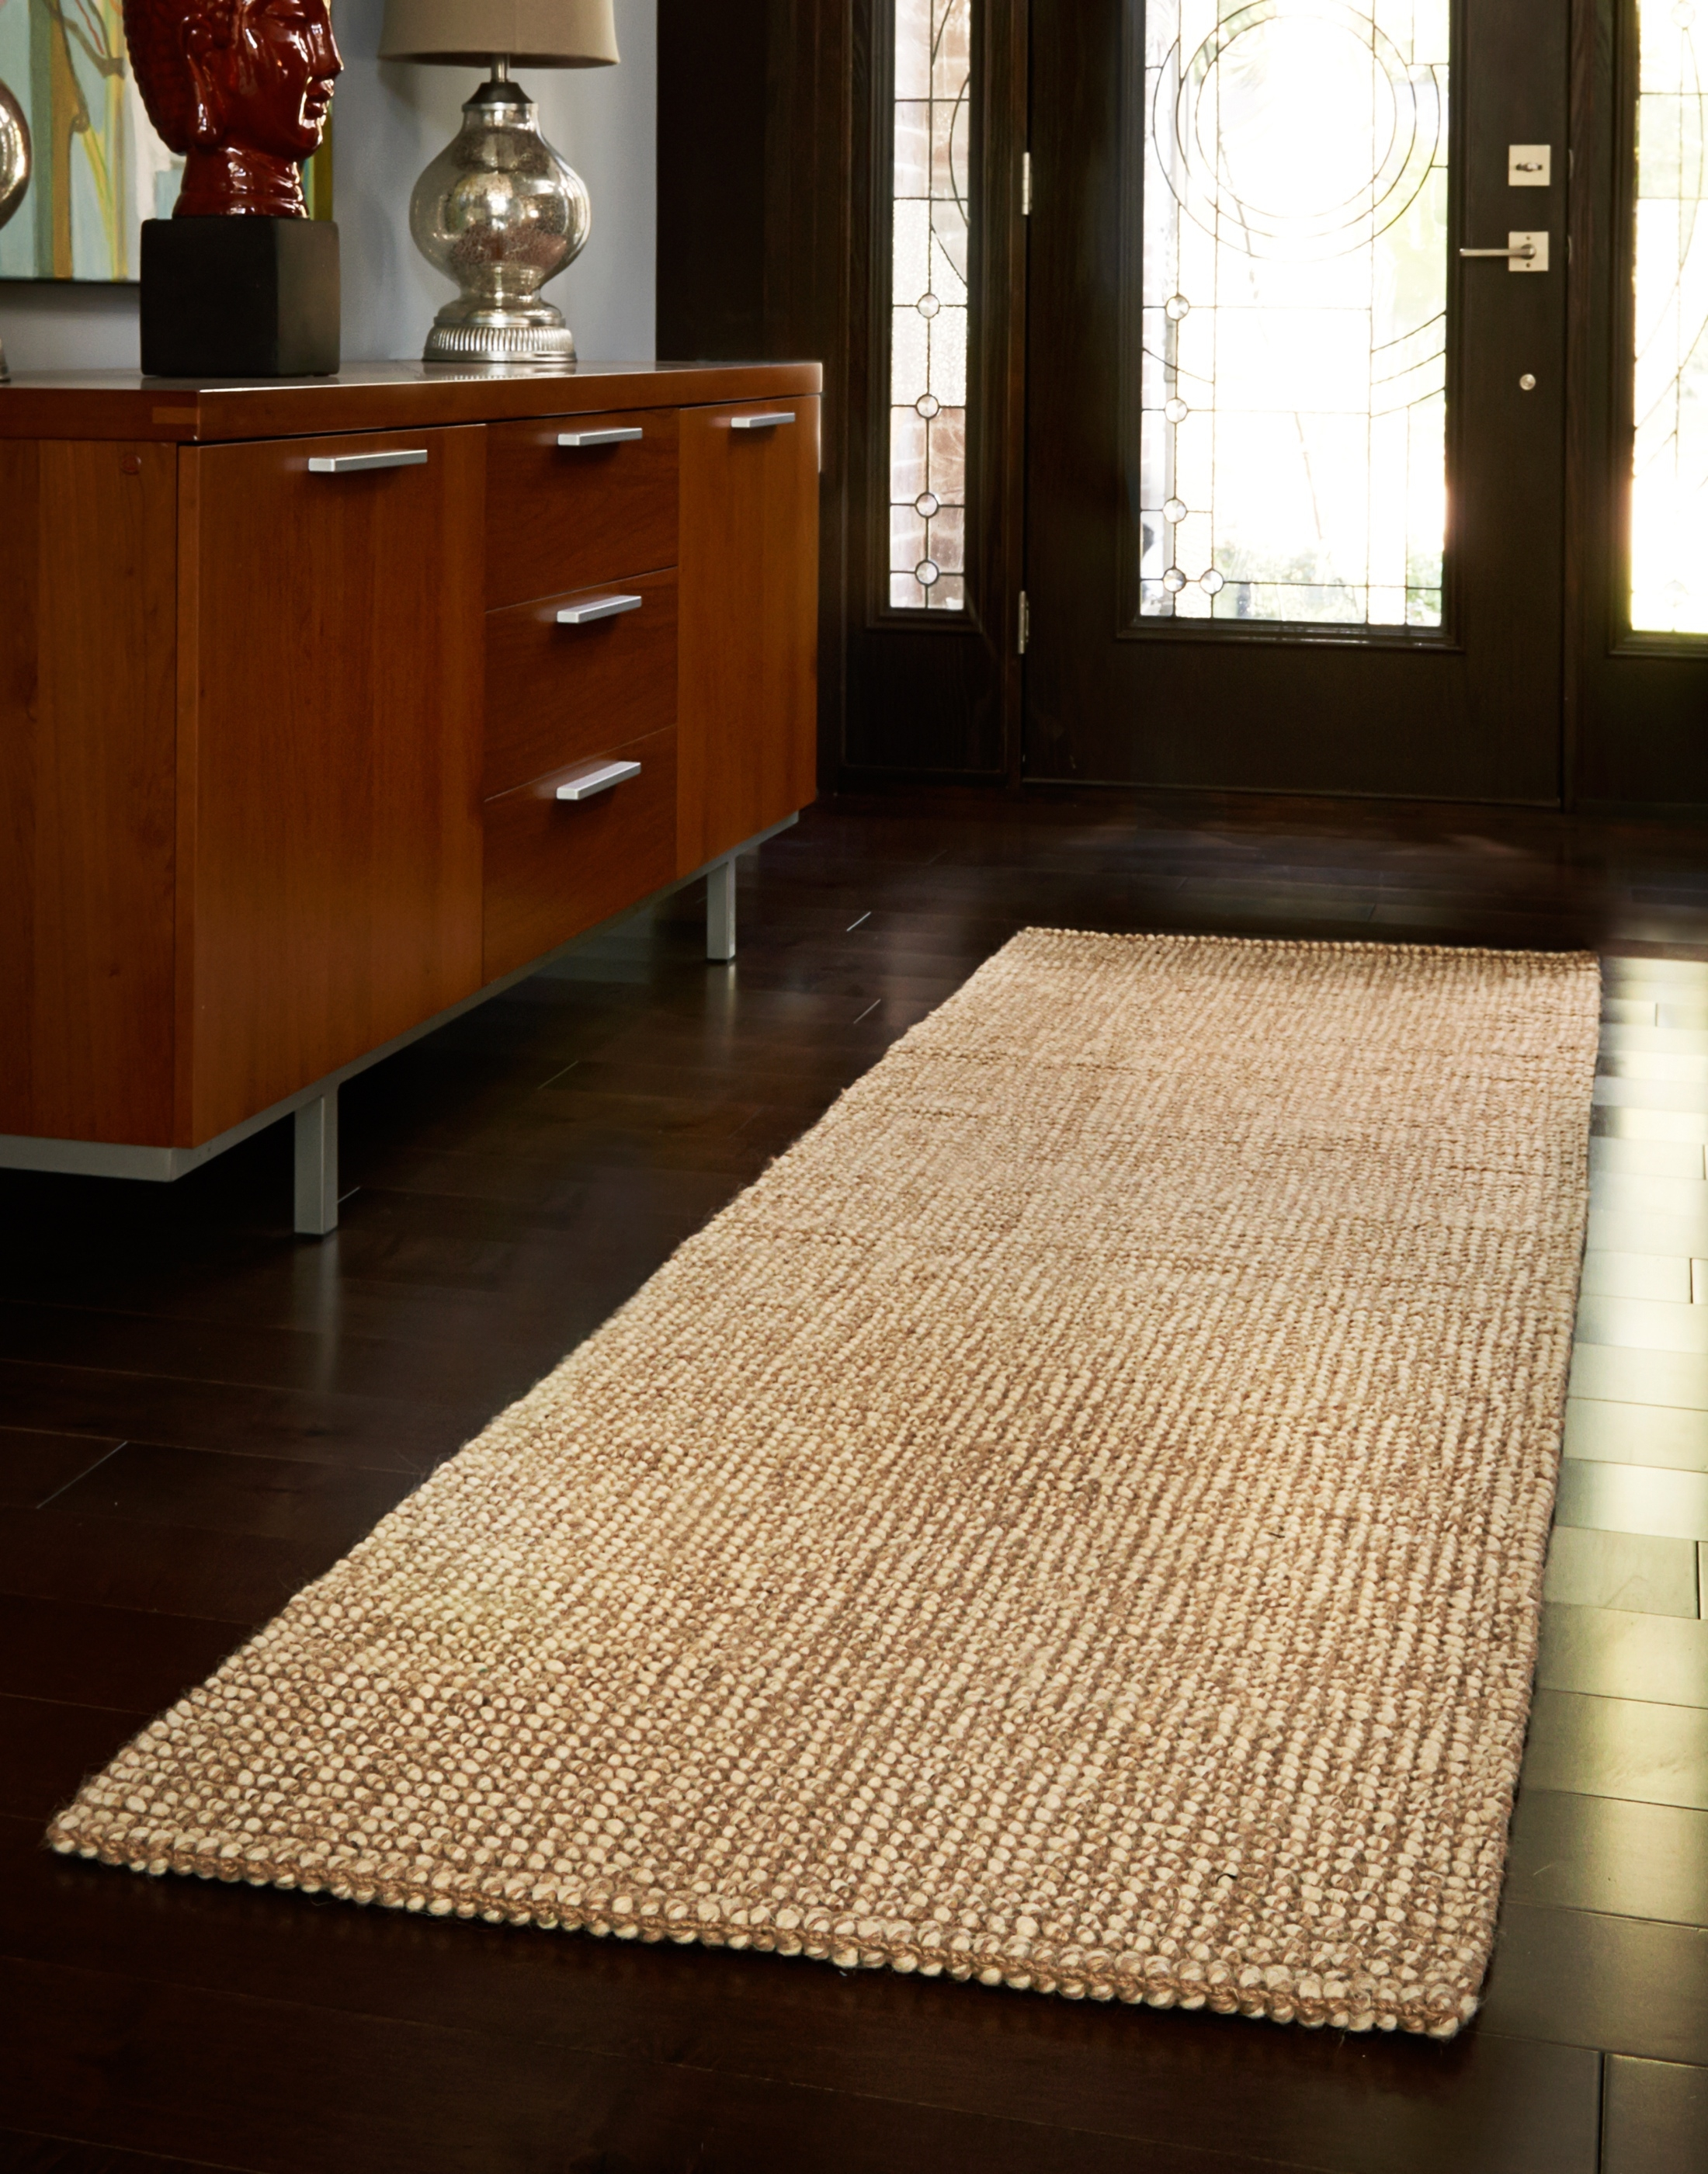 Extraordinary Idea Rug Runner For Hallway Magnificent Ideas Long Within Hallway Rug Runner For Long Hallway (#7 of 20)